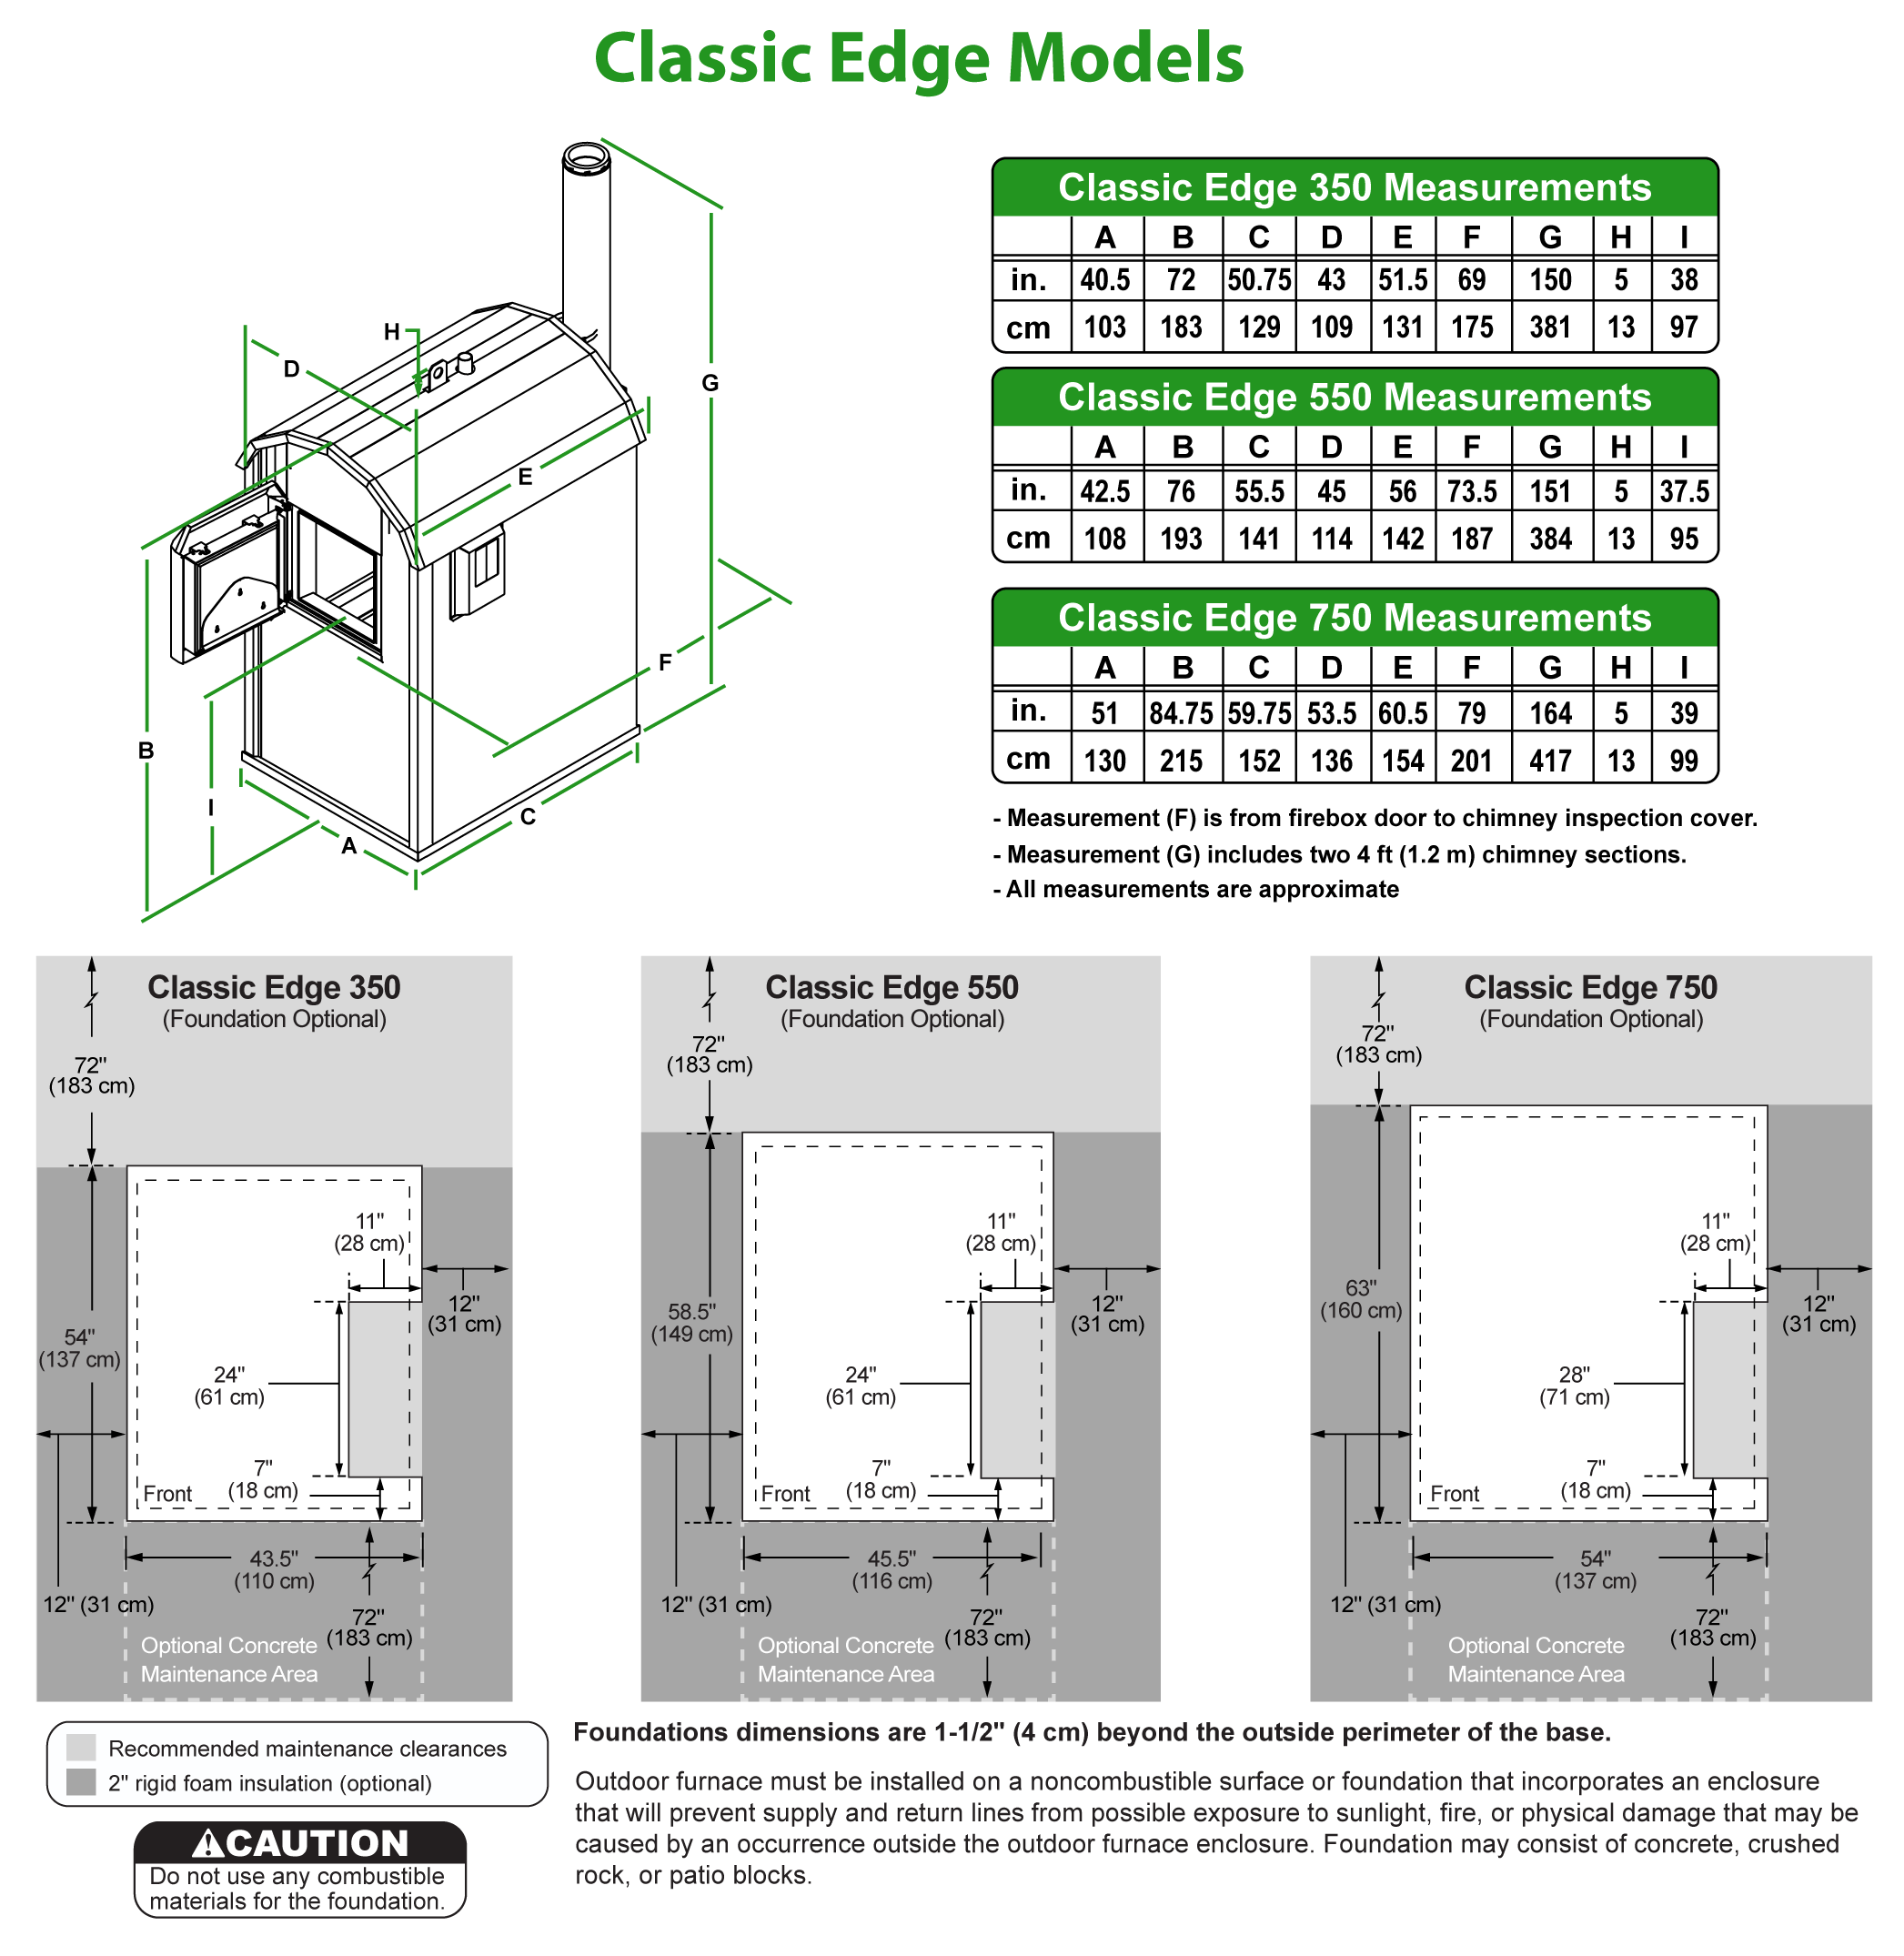 Wiring Diagram 350 Residential Wood Stove 41 Images Thermostat Wire Outdoor Electrical The Home Depot Classic Edge 550 750 Measurements Old Furnace At